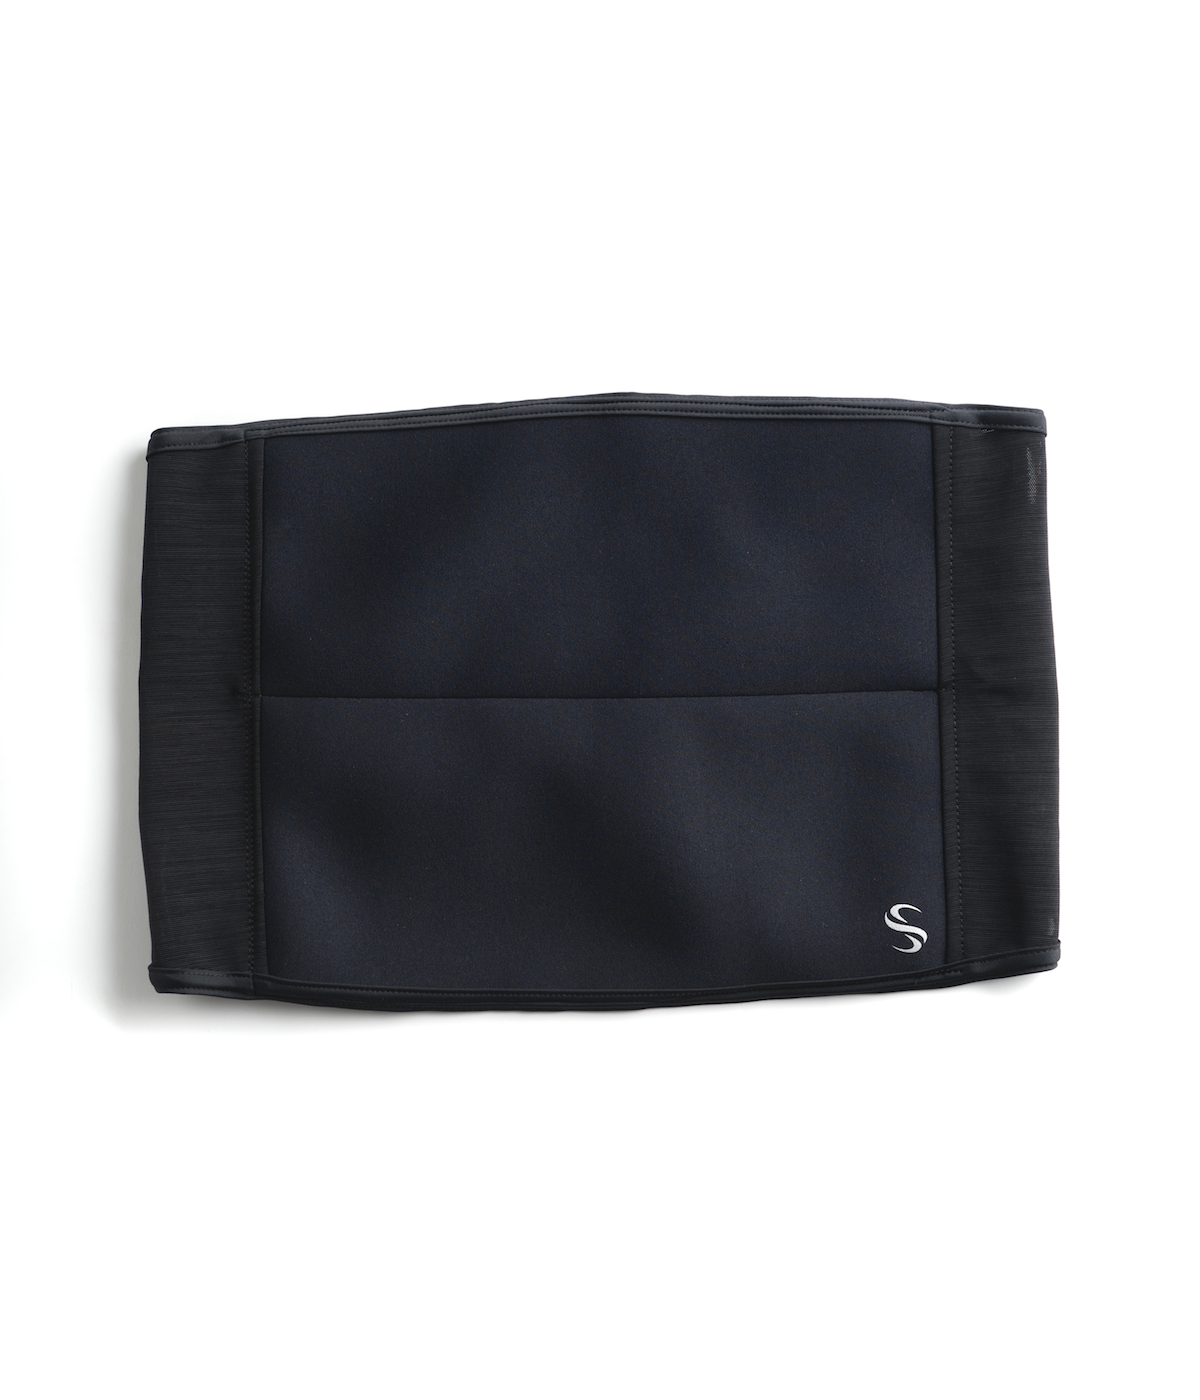 Spand-Ice   Hot + Cold The Recovery Wrap   Back Closed